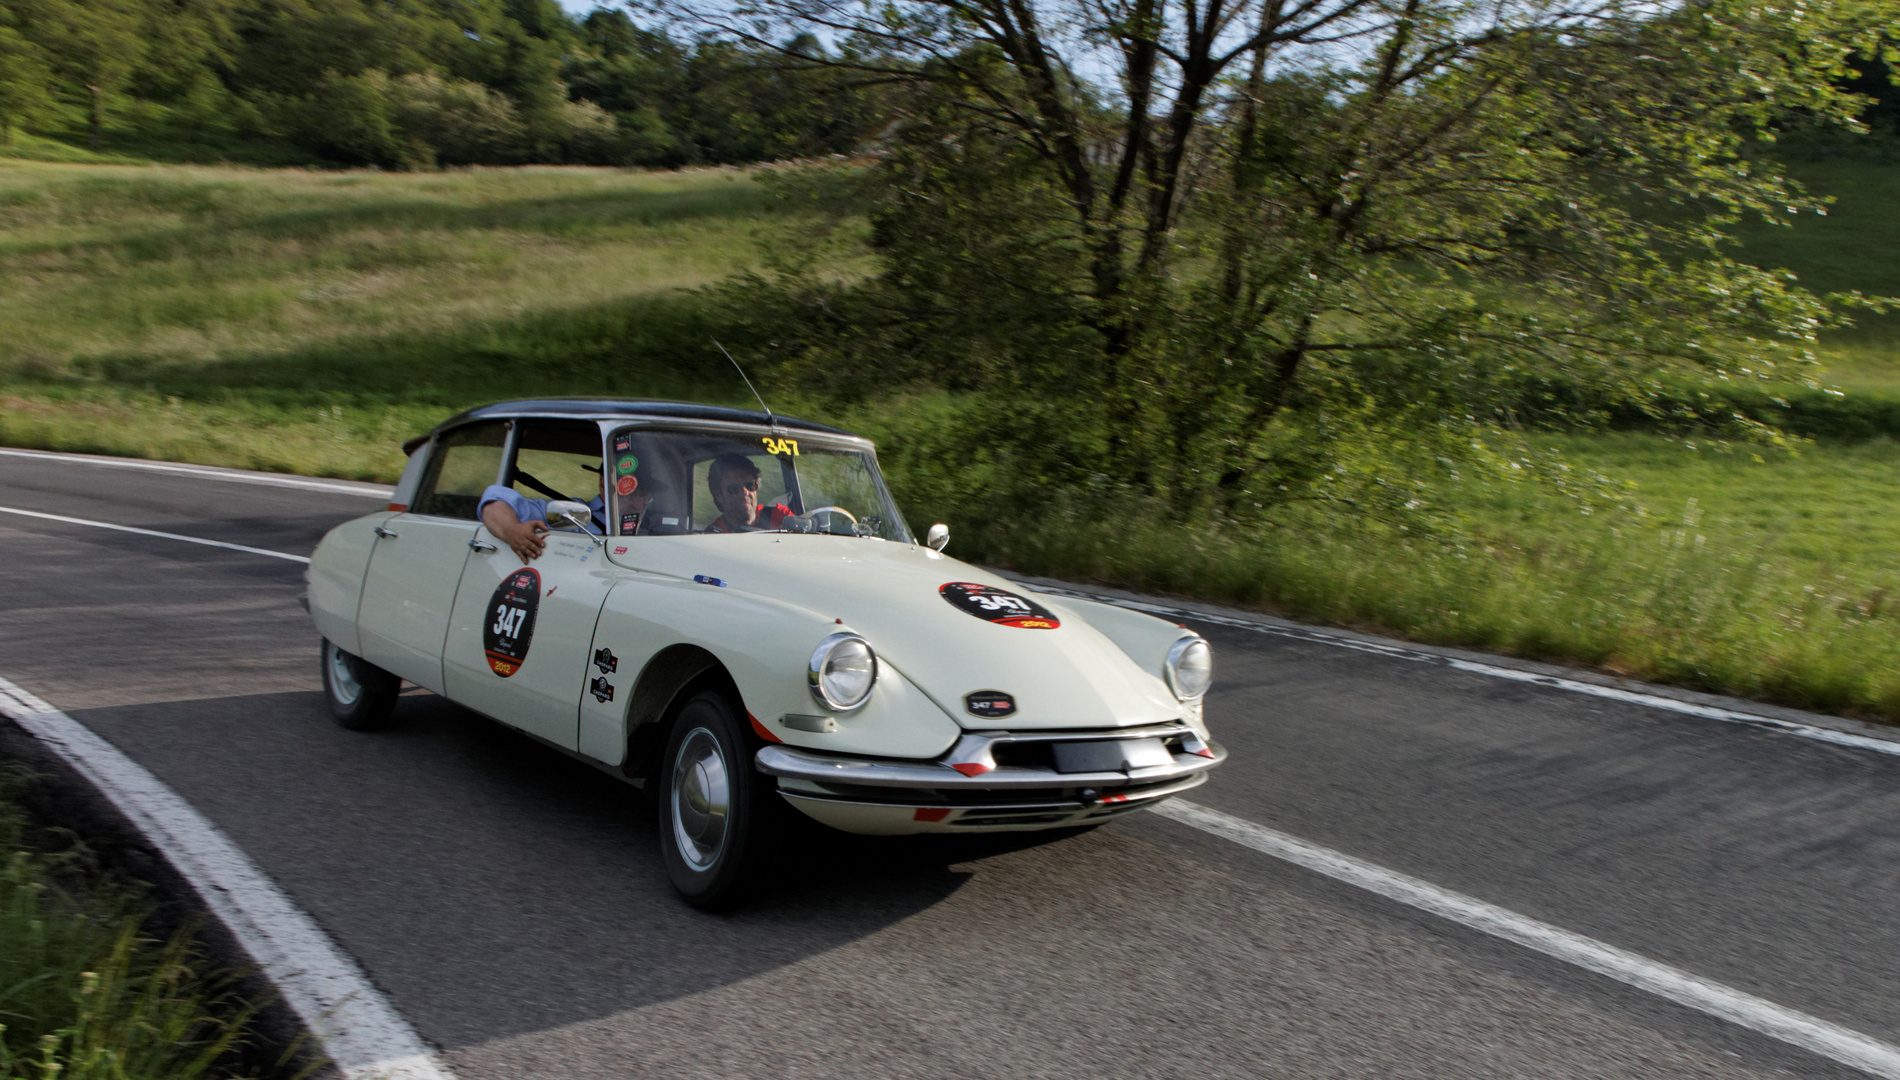 Mille Miglia 2012: Citroen DS in voller Neigerung